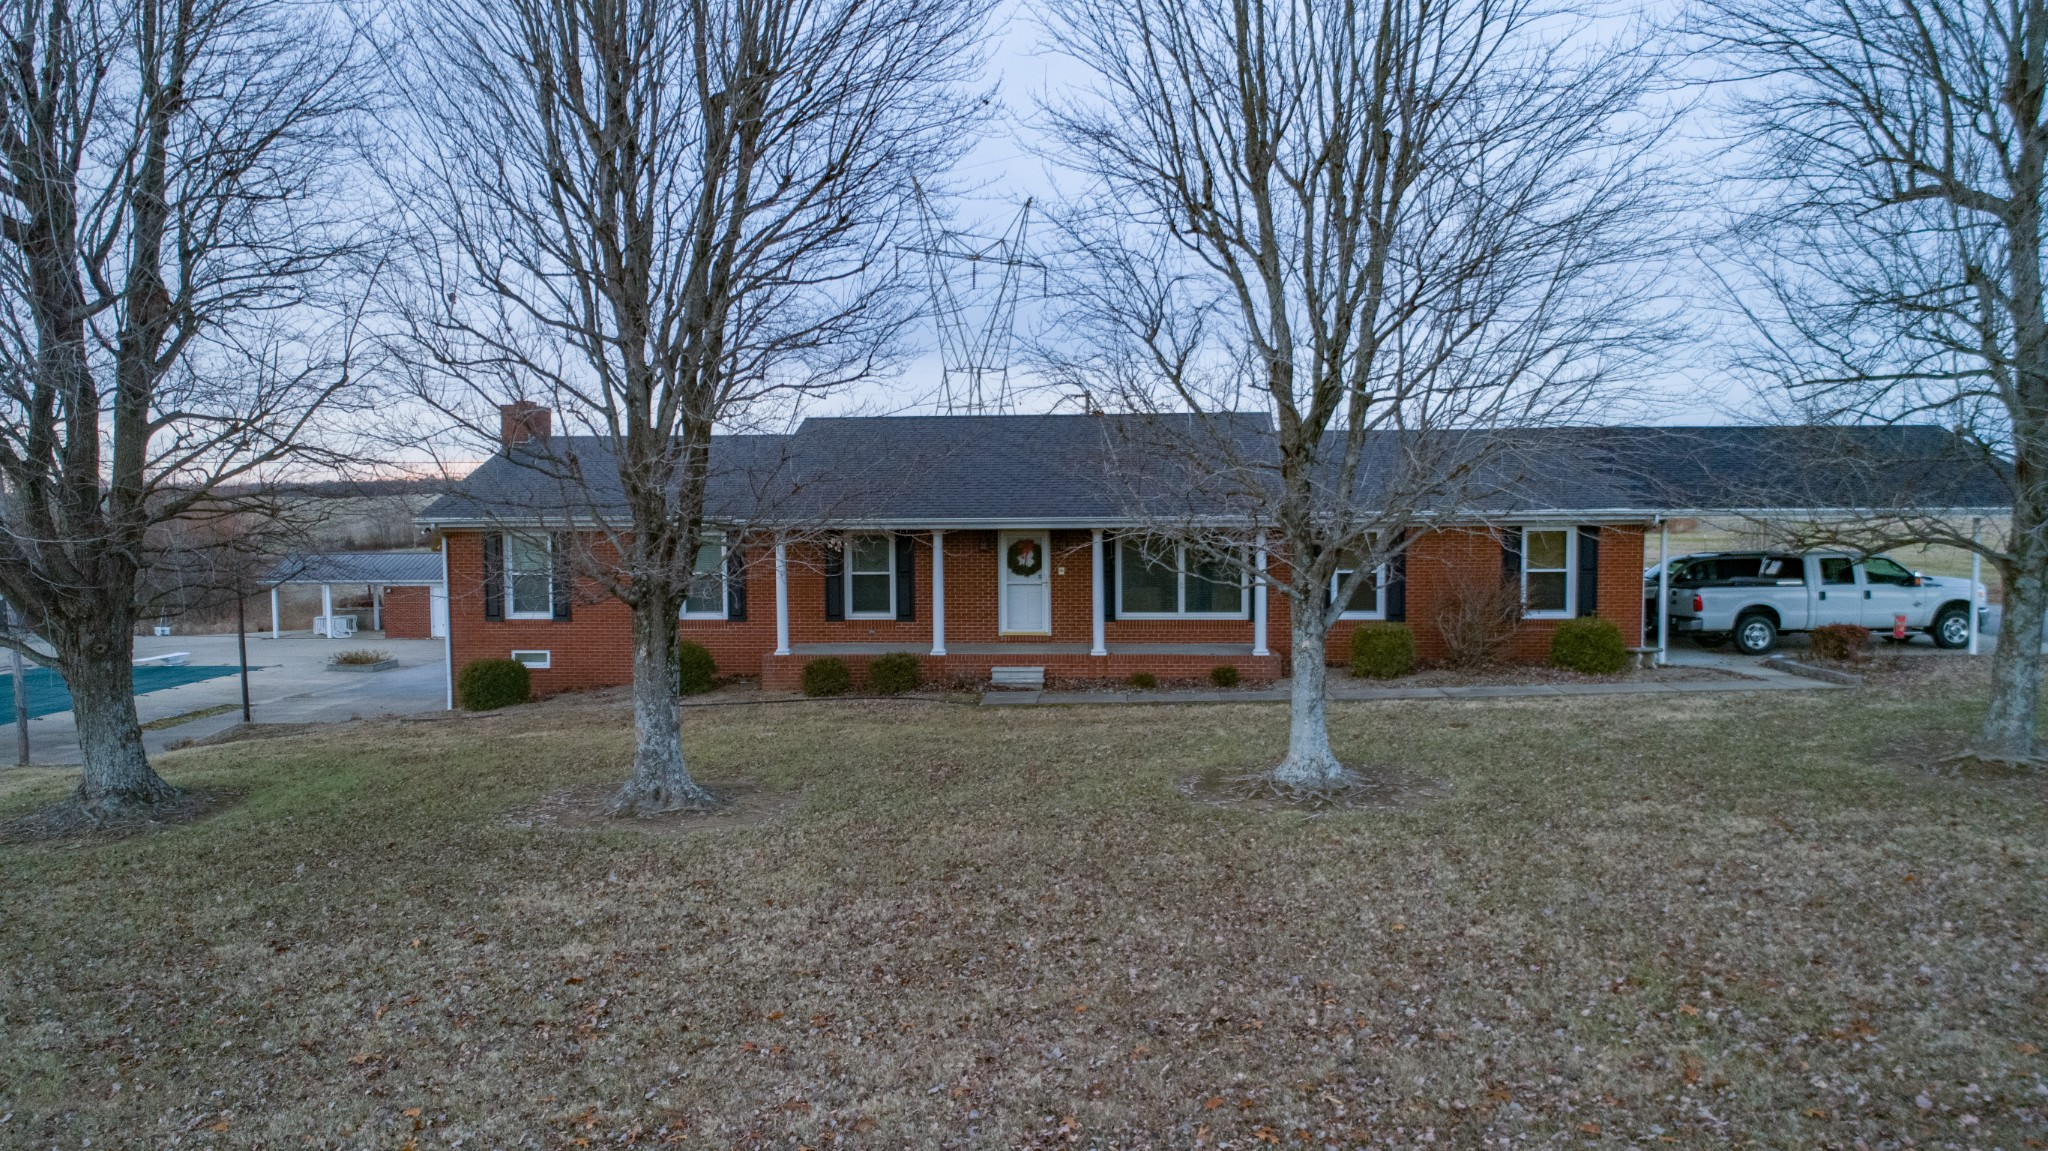 7965 Greenville Rd Property Photo - Hopkinsville, KY real estate listing